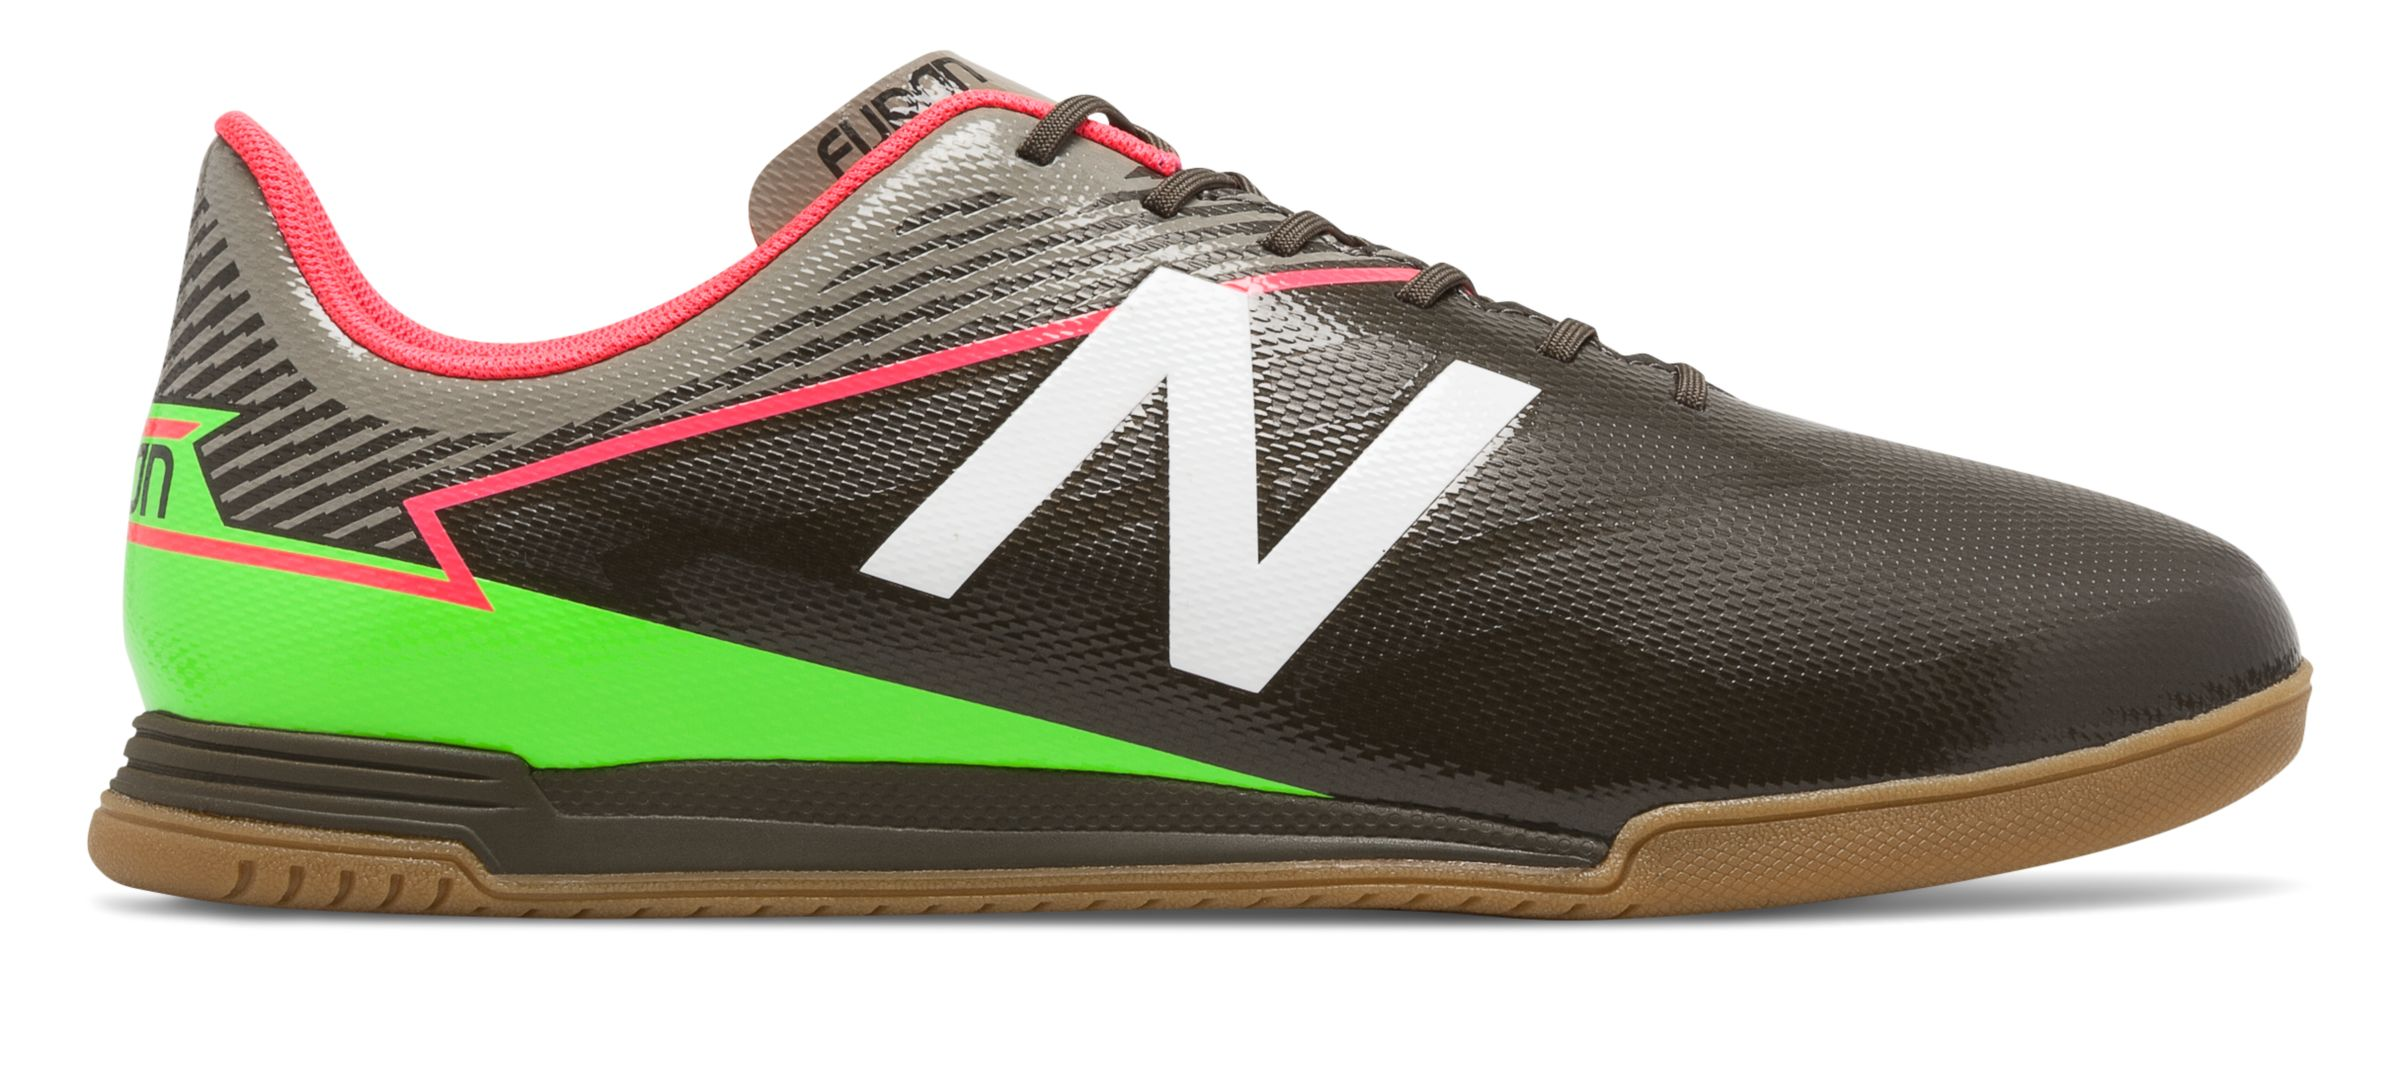 NB Furon 3.0 Dispatch IN, Military Dark Triumph with Alpha Pink & Energy Lime